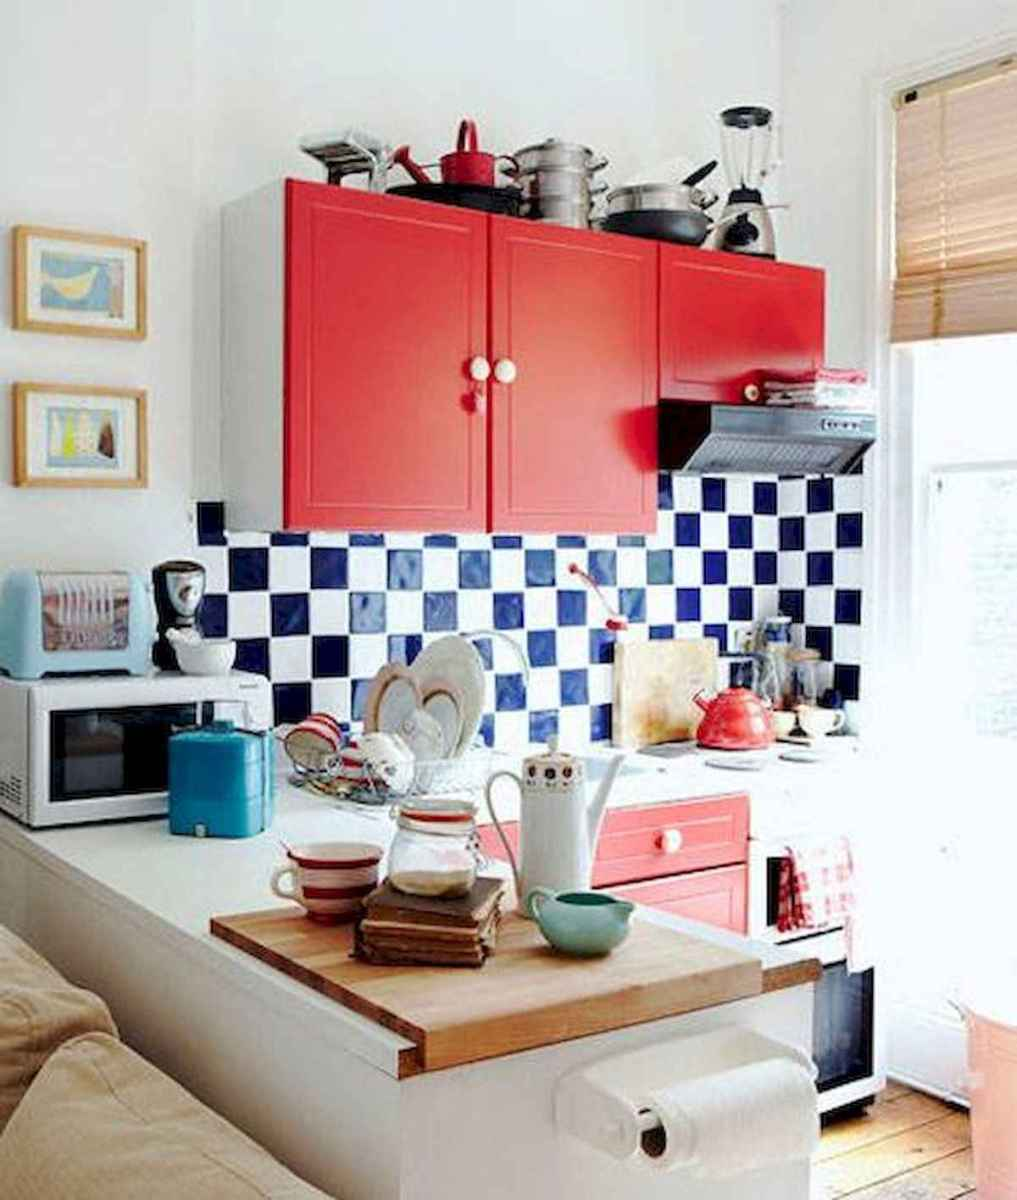 80+ Fantastic Colorful Kitchen Decor Ideas And Remodel for Summer Project (76)